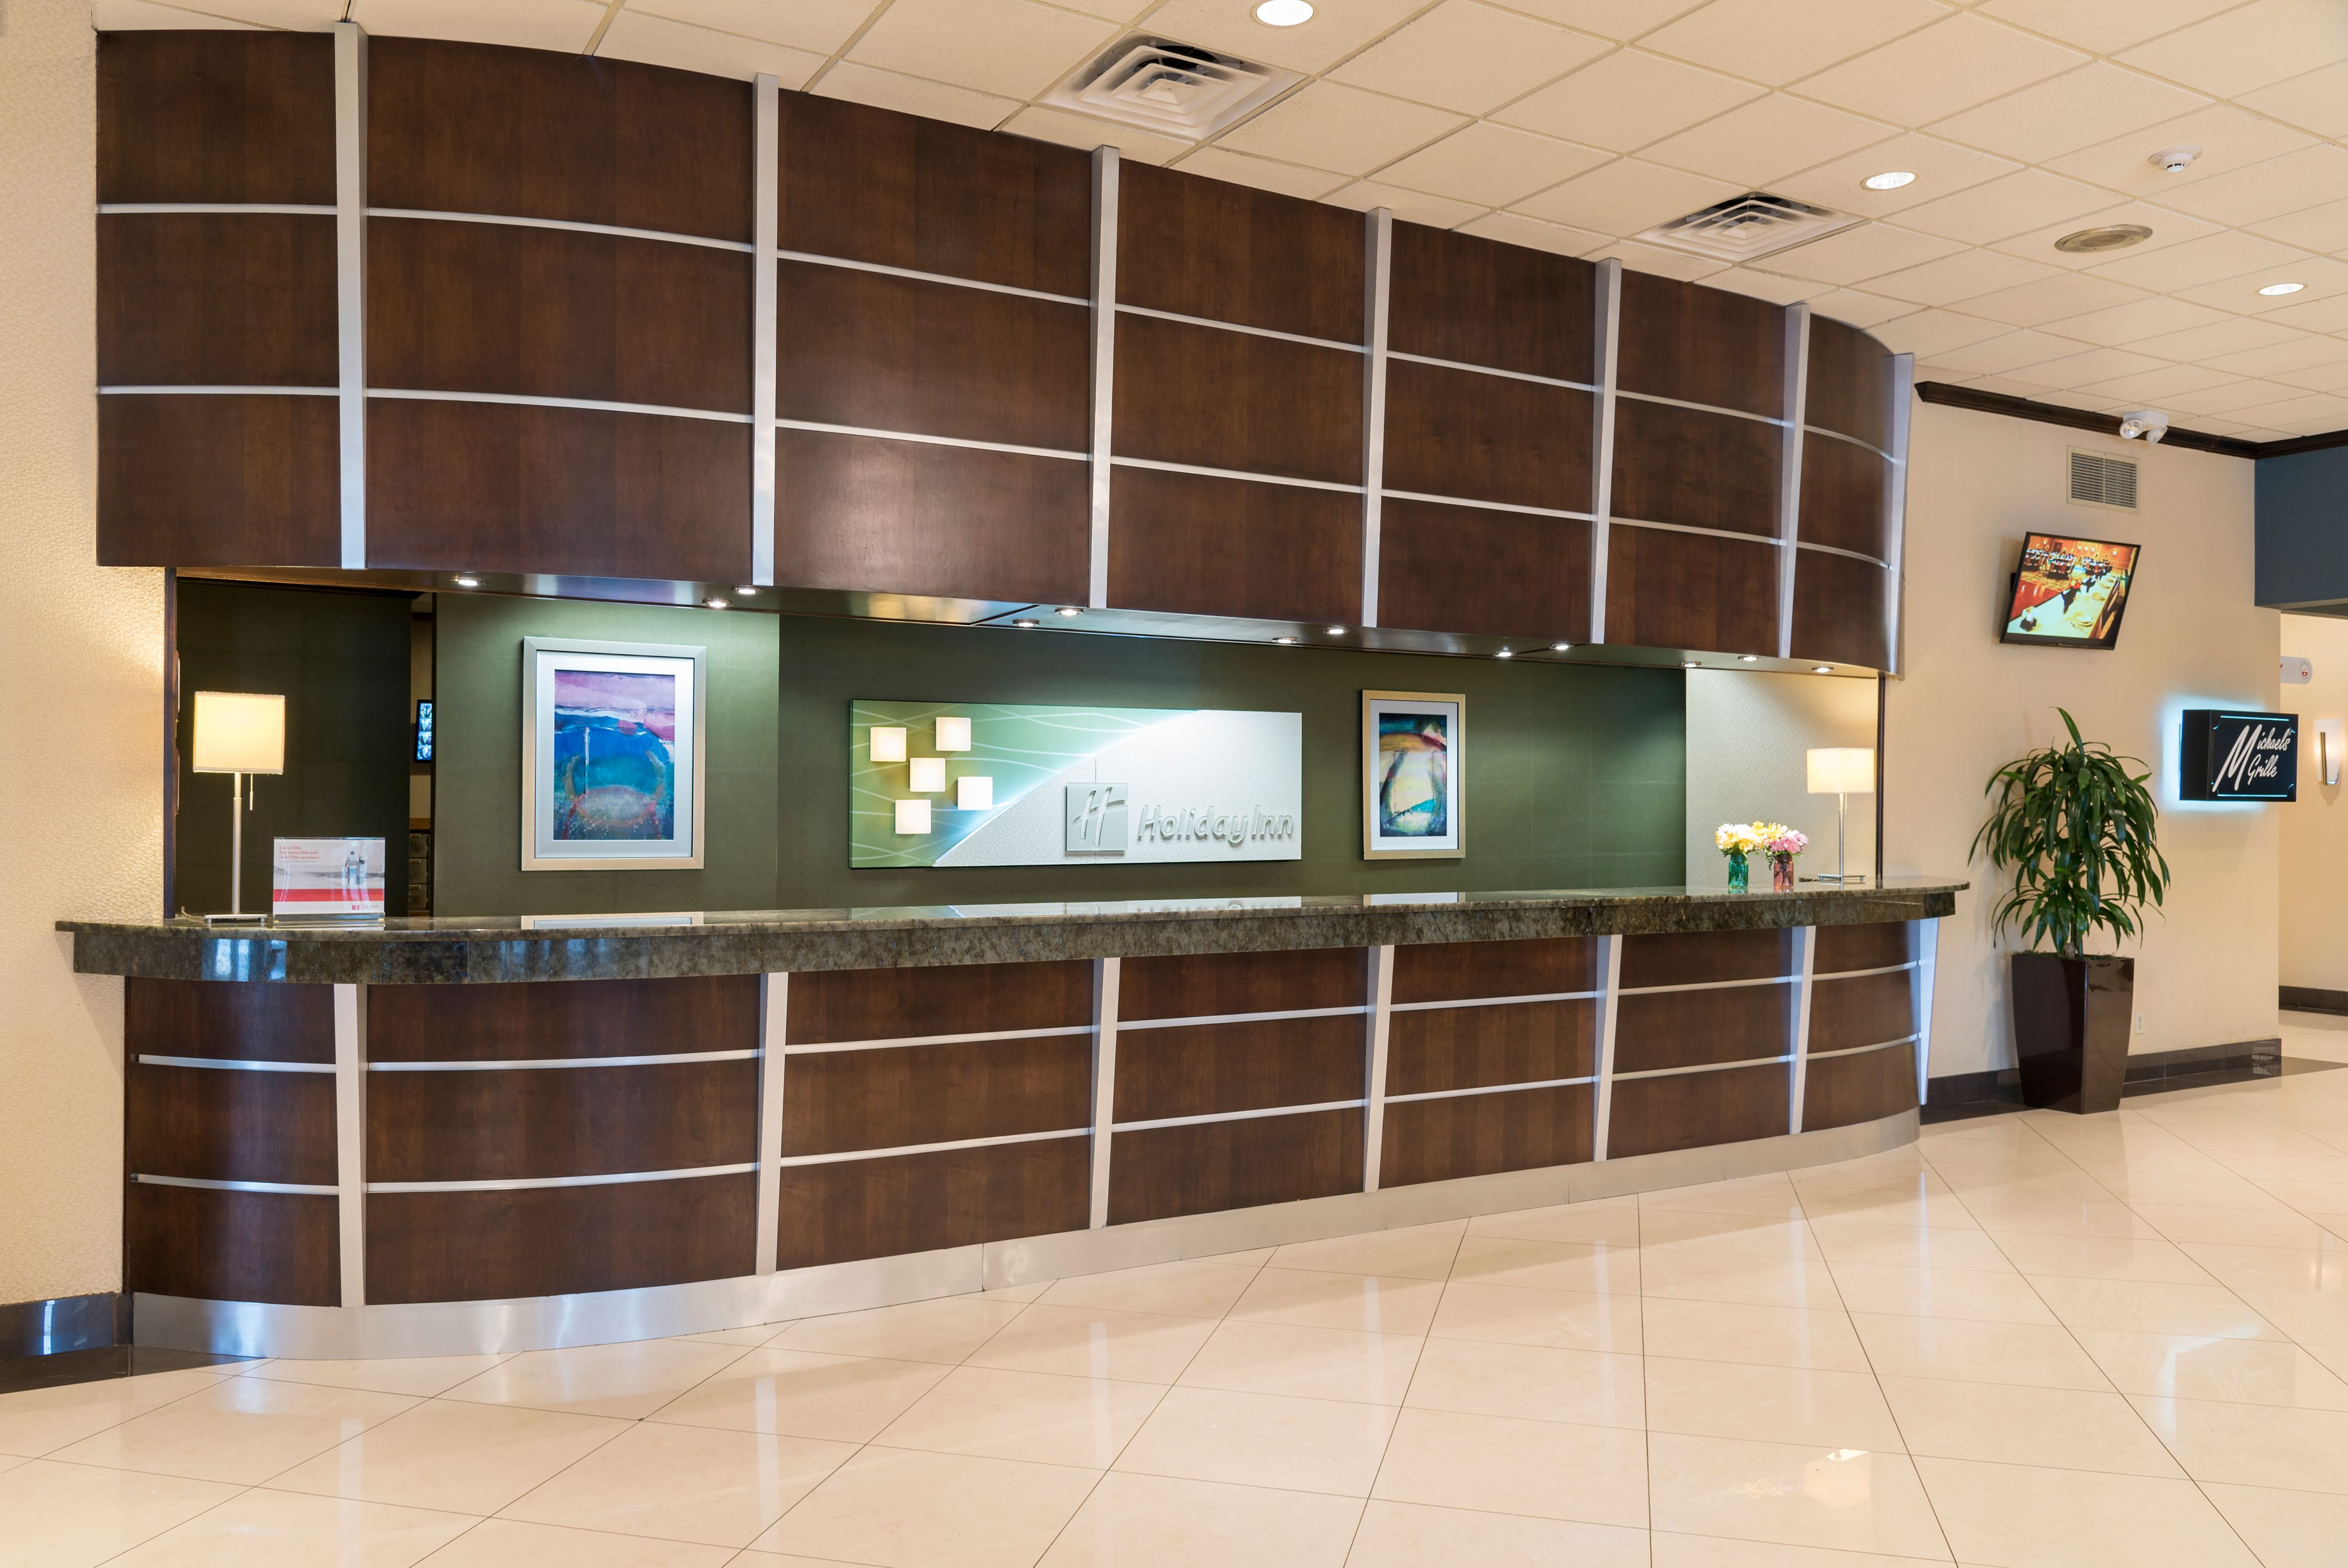 Holiday Inn Cleveland S Independence At 6001 Rockside Rd